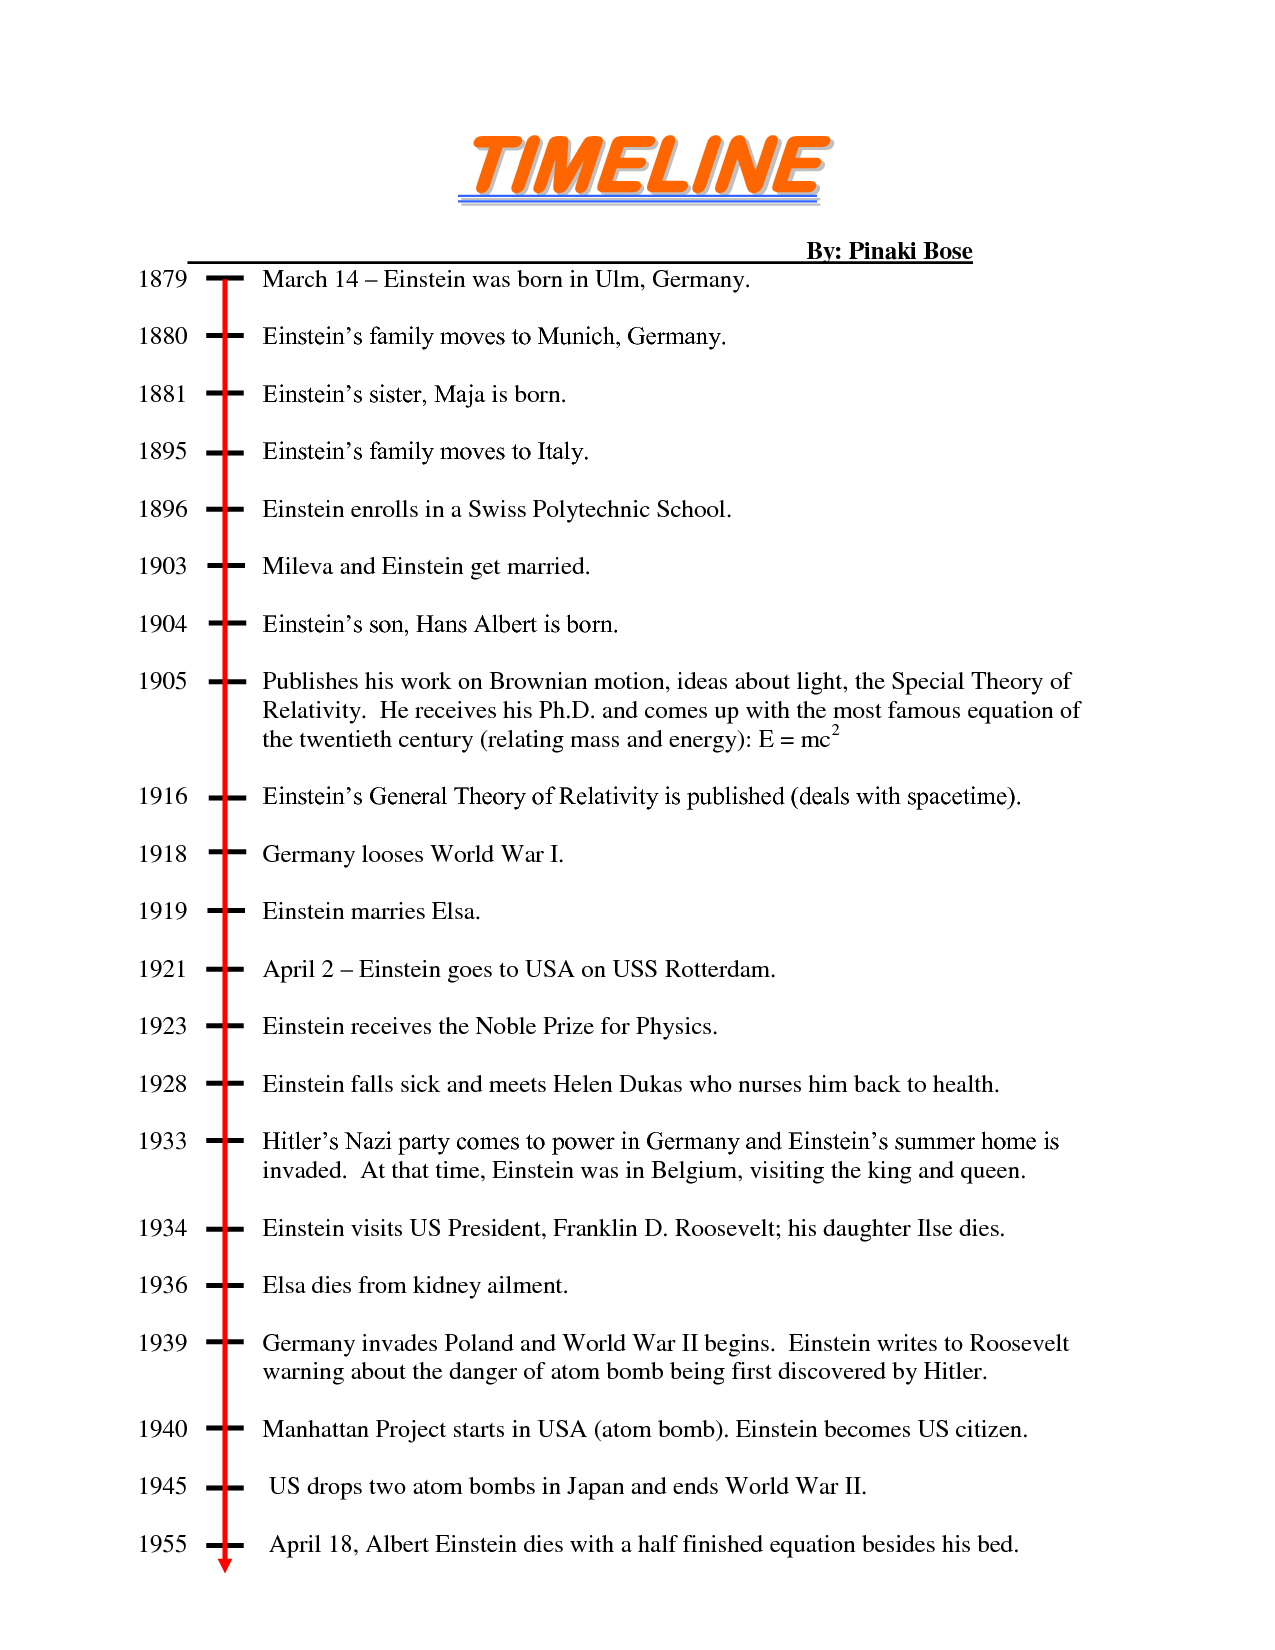 Albert Einstein Invention Timeline